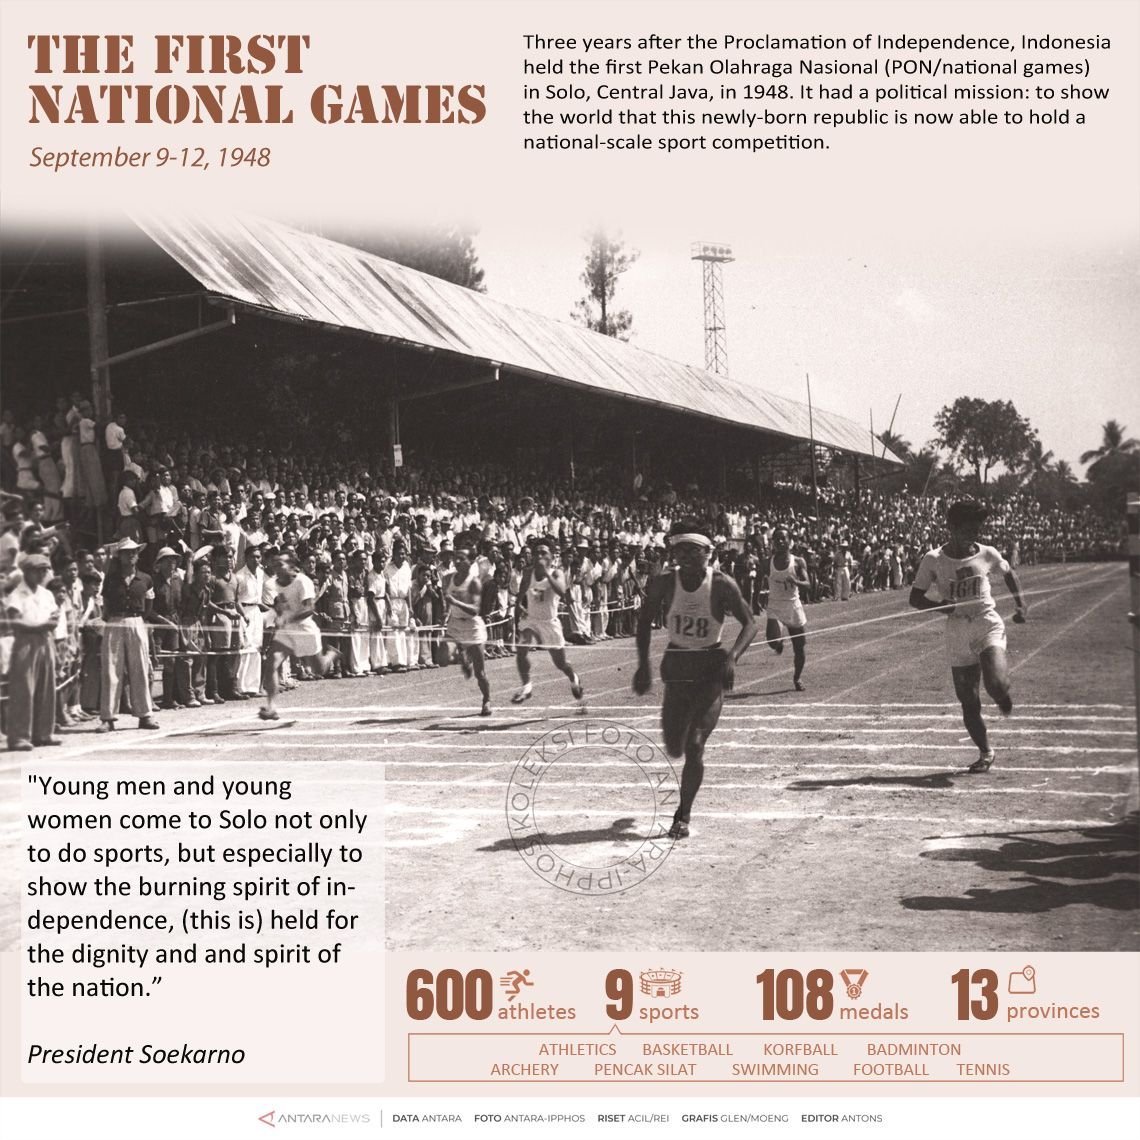 Indonesia's First National Games 1948